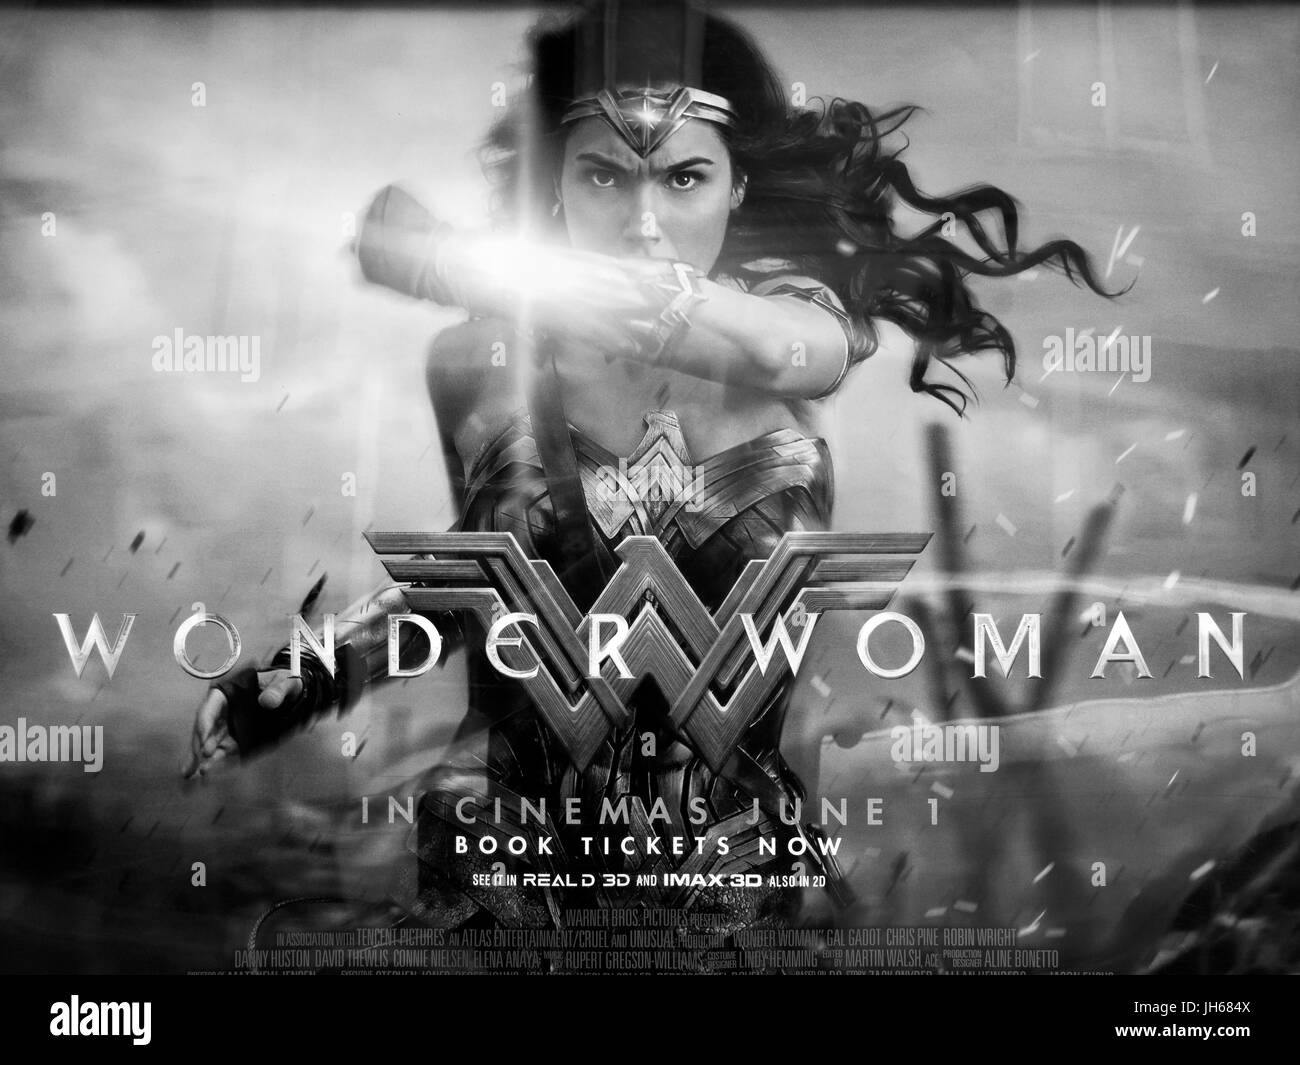 Motion picture poster advertising Wonder Woman, superhero film based on the DC Comics character staring Gal Gadot - Stock Image